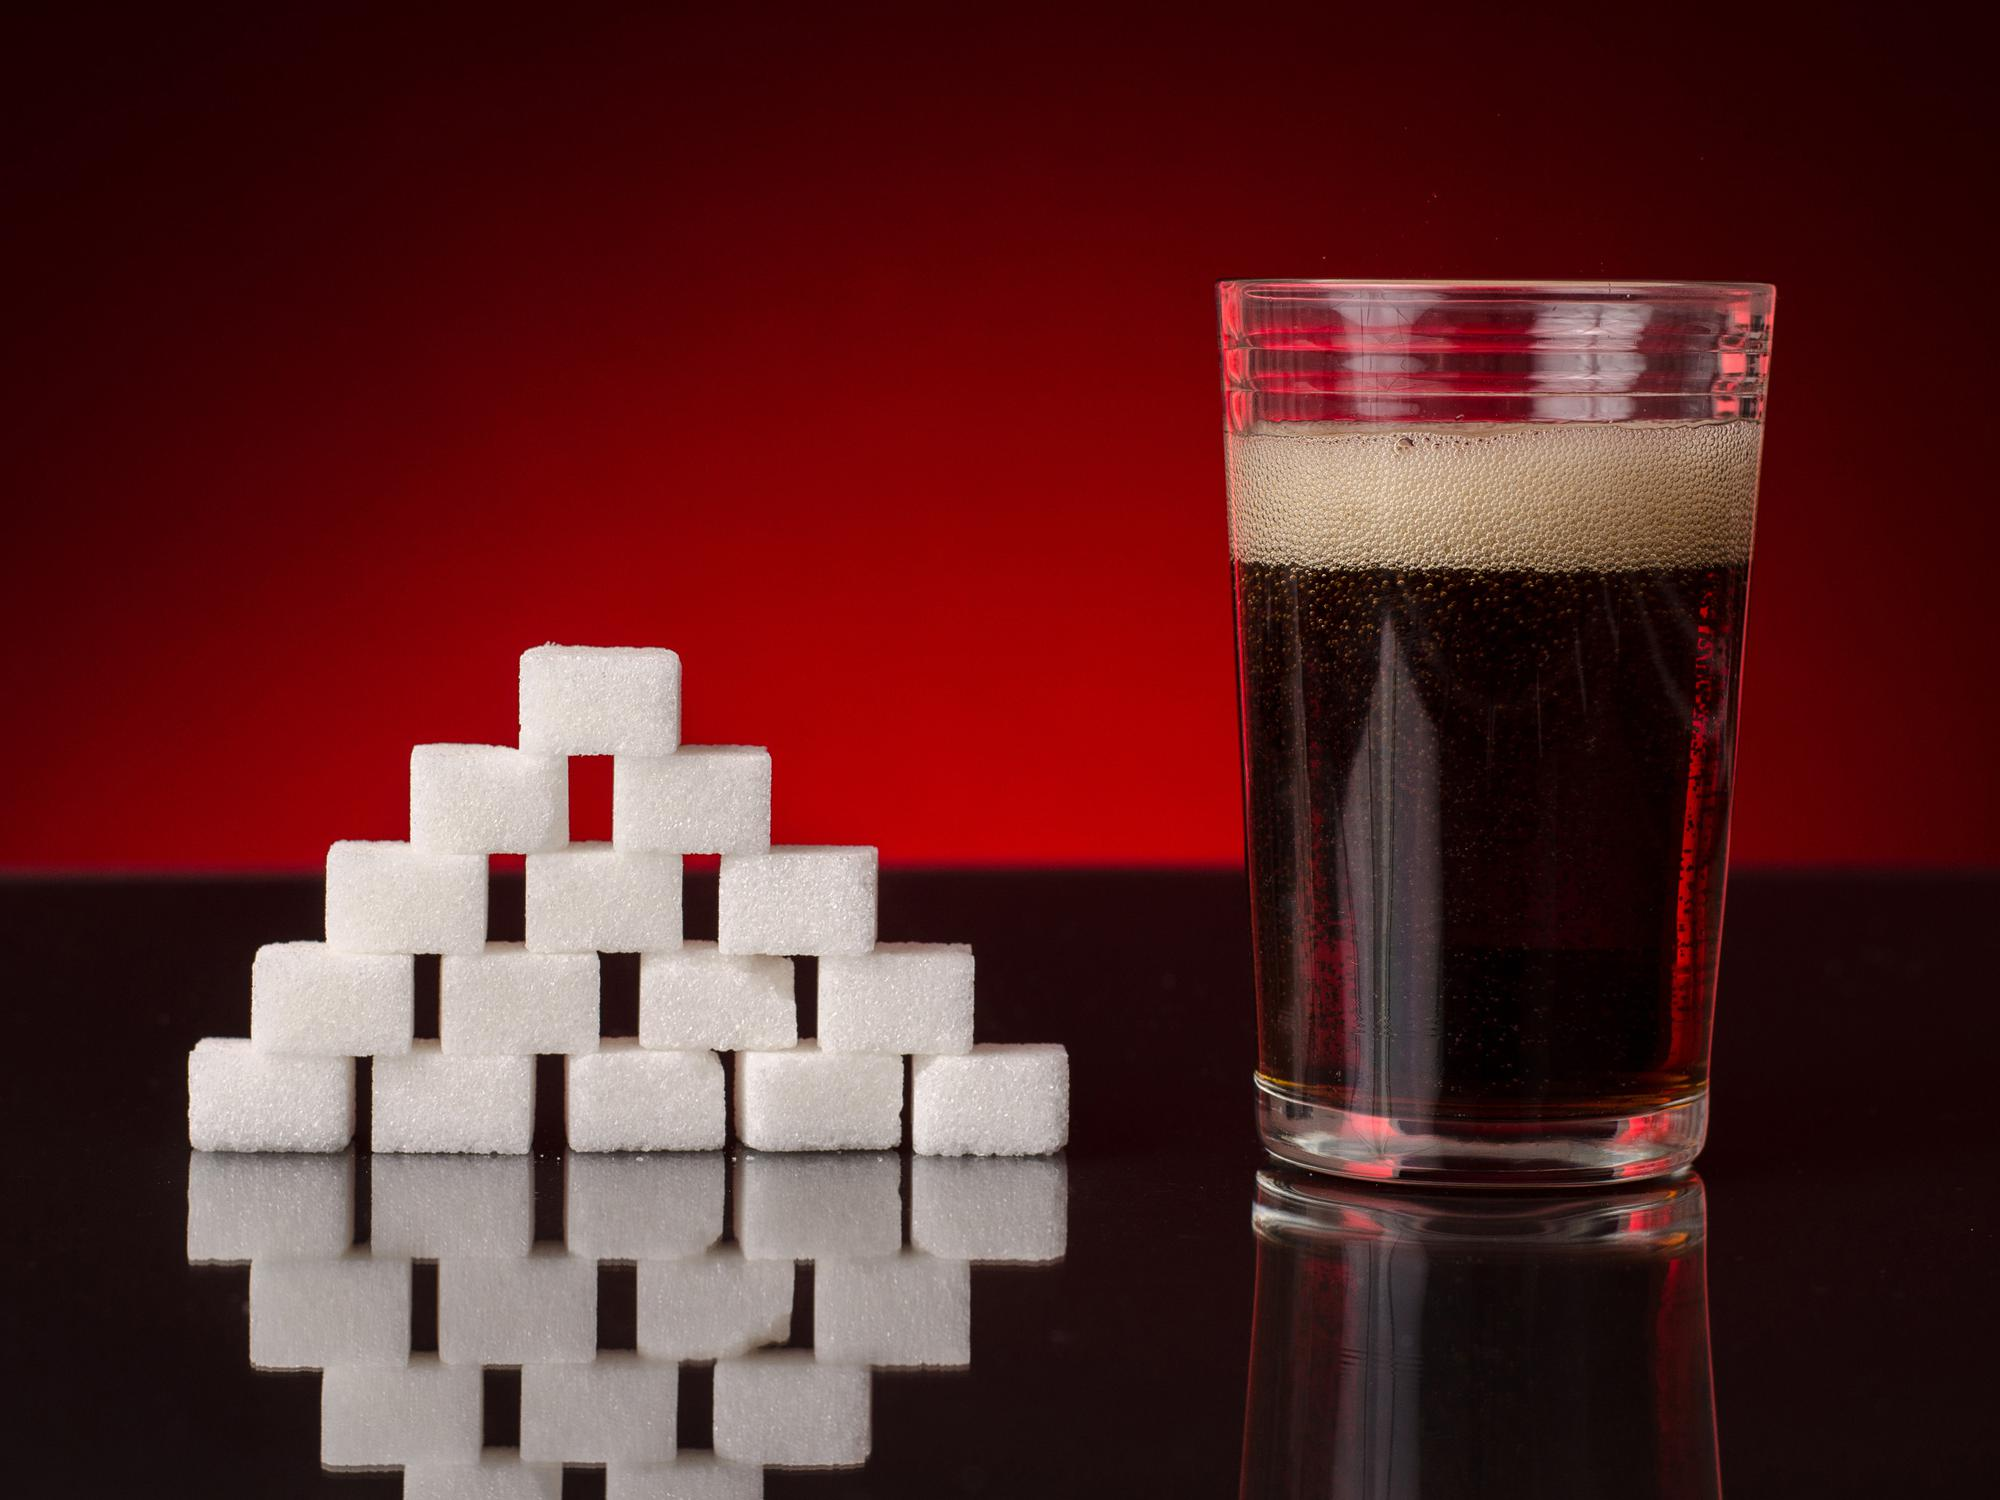 A 12-ounce can of soda may contain as much as 10 to 12 teaspoons of sugar. Added sugar in soda may increase the risks of insulin resistance, weight gain and dental health problems. (Photo by CanStock)